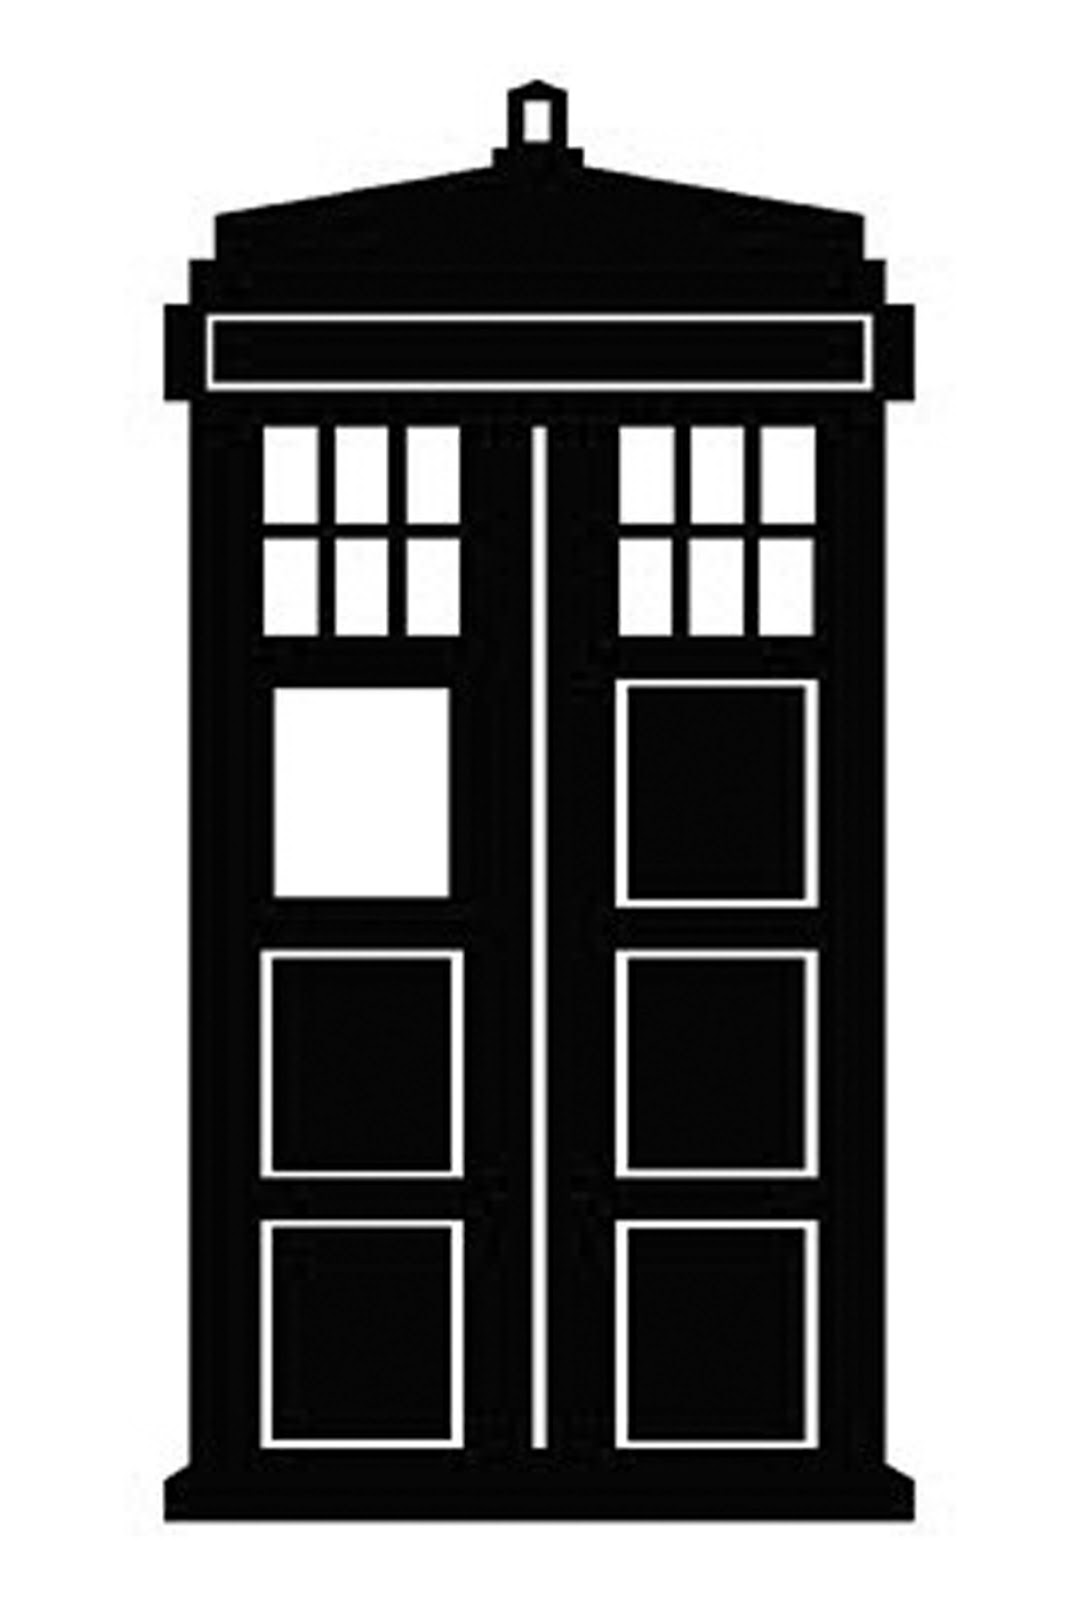 Doctor Who Stencil Silhouette Outline Cl-Doctor Who Stencil Silhouette Outline Clipart Mania!-5